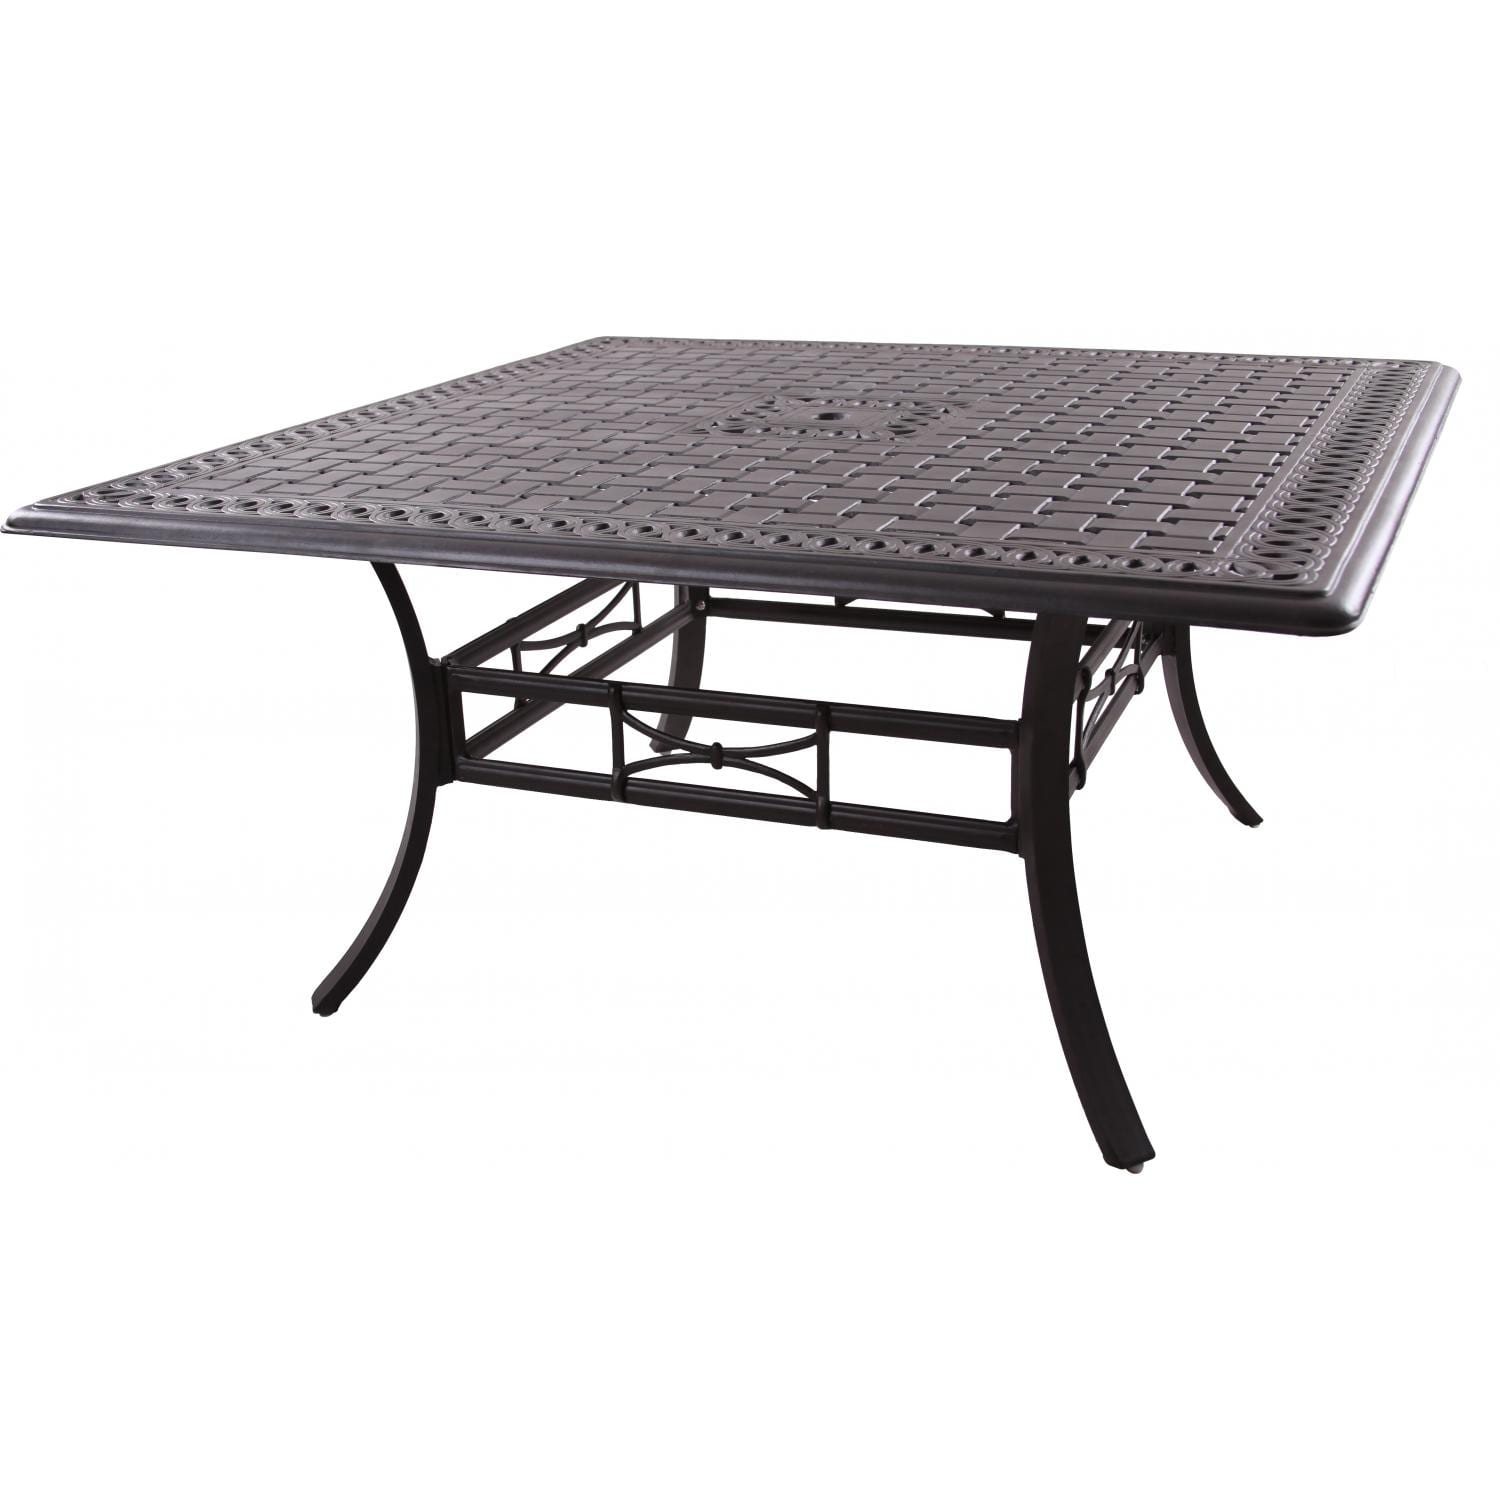 Darlee Series 88 60-Inch Cast Aluminum Patio Dining Table